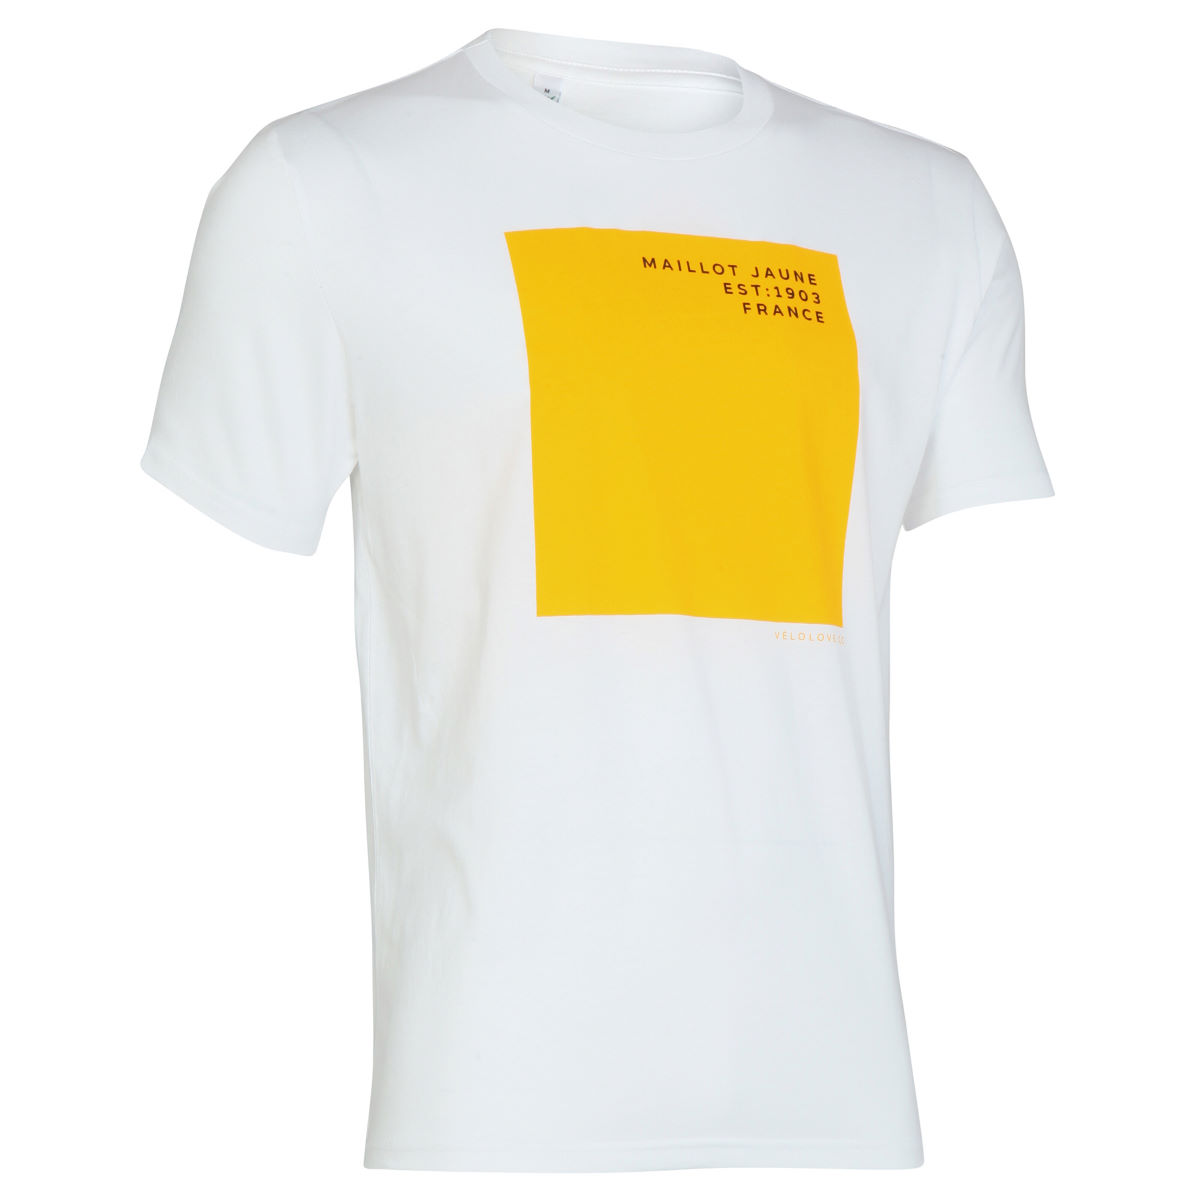 T-shirt Velolove Maillot Jaune - S White / Yellow Block T-shirts